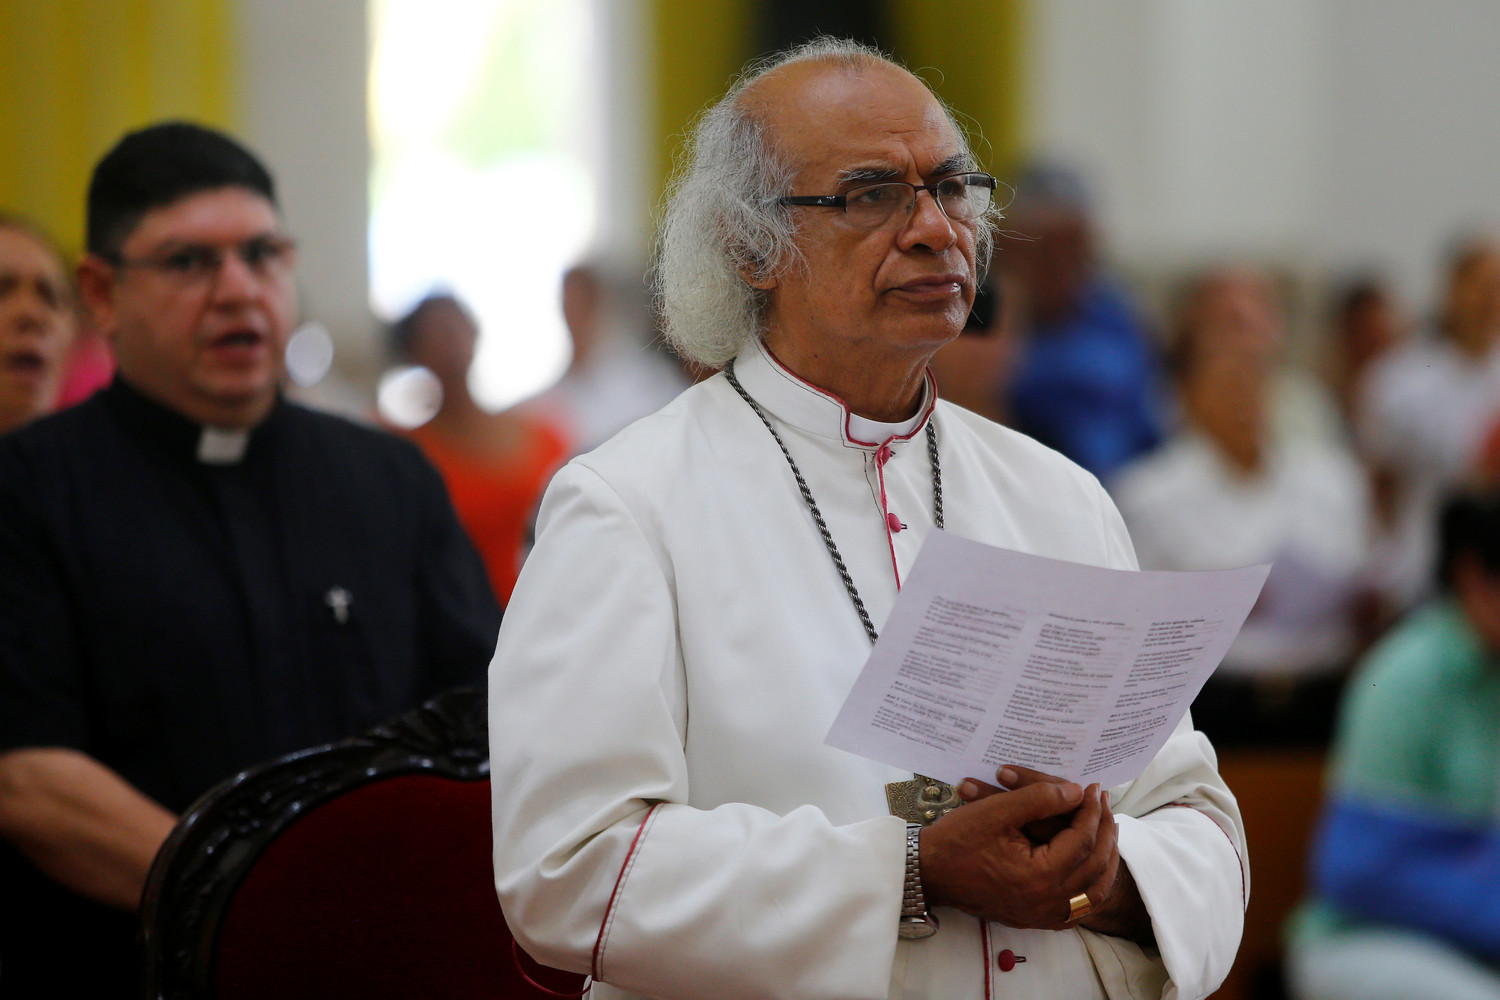 Cardinal Leopoldo Brenes Solorzano of Managua, Nicaragua, celebrates Mass June 21 at the Metropolitan Cathedral as clashes between anti-government protesters and police continue in Managua. The cardinal was among Nicaraguan bishops and clergy attacked by armed groups aligned with the government July 9 in the city of Diriamba.